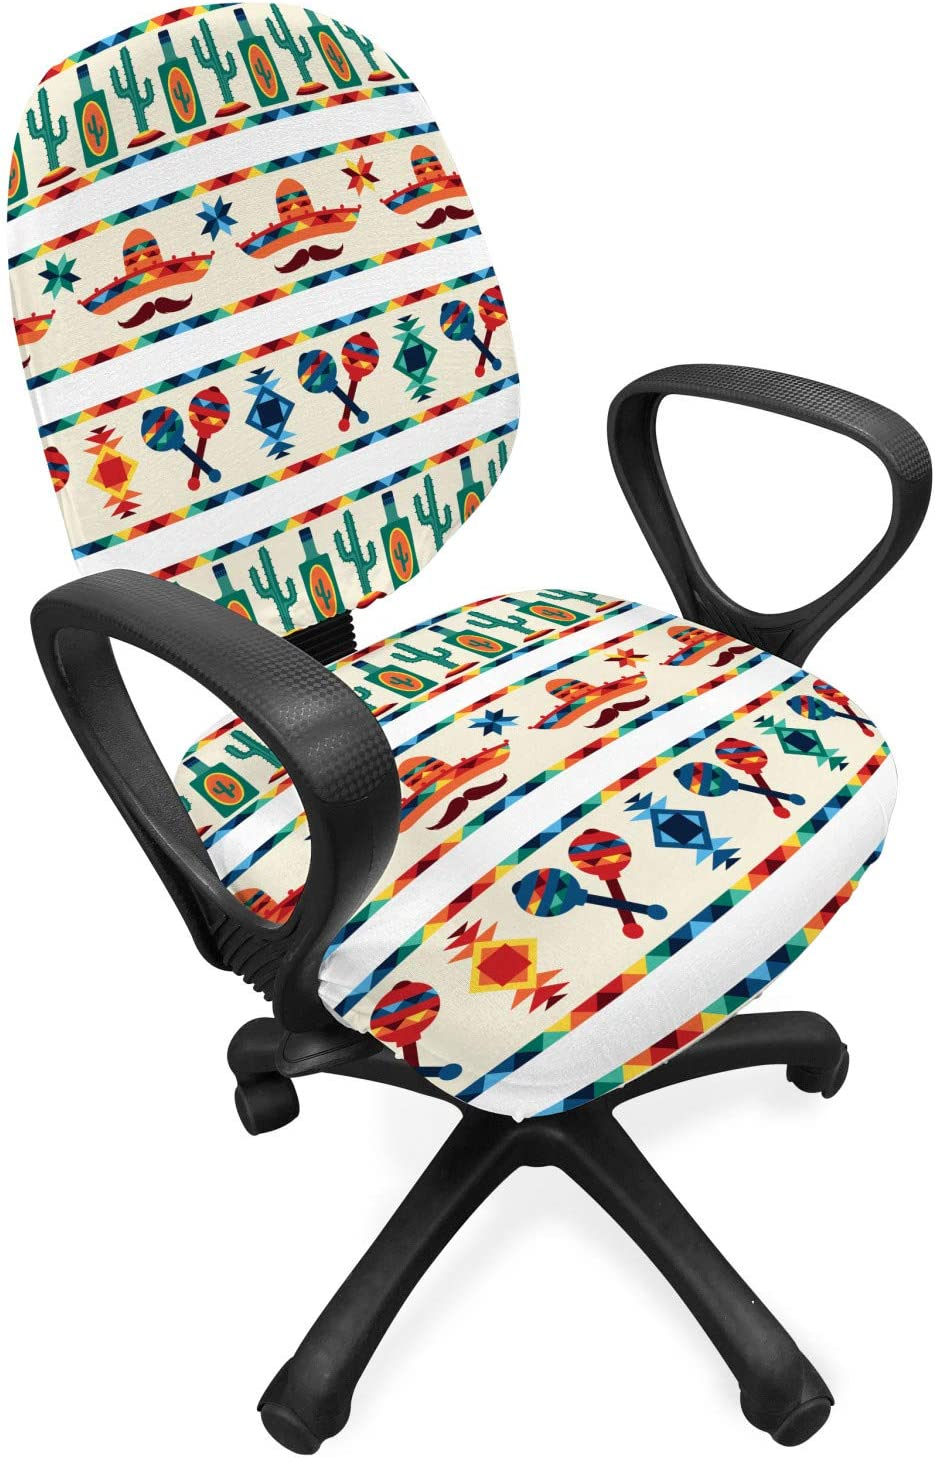 Ambesonne Mexican Office Chair Slipcover, Latin American Cultural Native Borders Indigenous Saguaro Sombrero Tequila Bottle, Protective Stretch Decorative Fabric Cover, Standard Size, Ivory